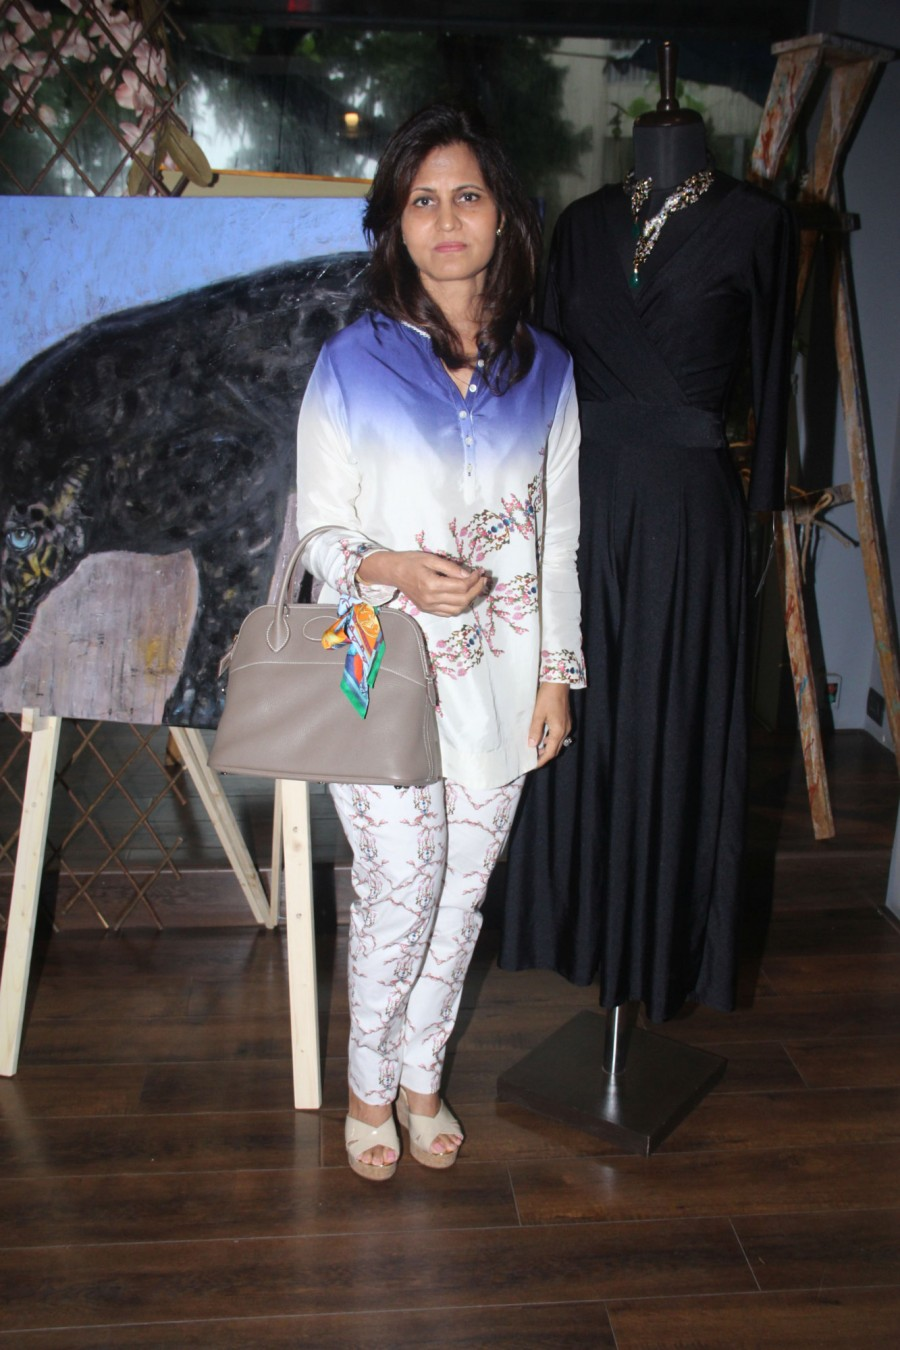 Zayed Khan,Talat Aziz,Pooja Bedi,Kiran Bawa,Naved and Sayeeda Jaffery,Kiran Juneja Sippy,Nazneen Bedi,Anju Malik with daughter Ada,Monaz Jethwani,Kunika Singh,Yasmin Morani,Delna Mistry,Kiran Bawa,Reshma Merchant,Priyanka Thakur,Aarti Surendranath,Anu Lut